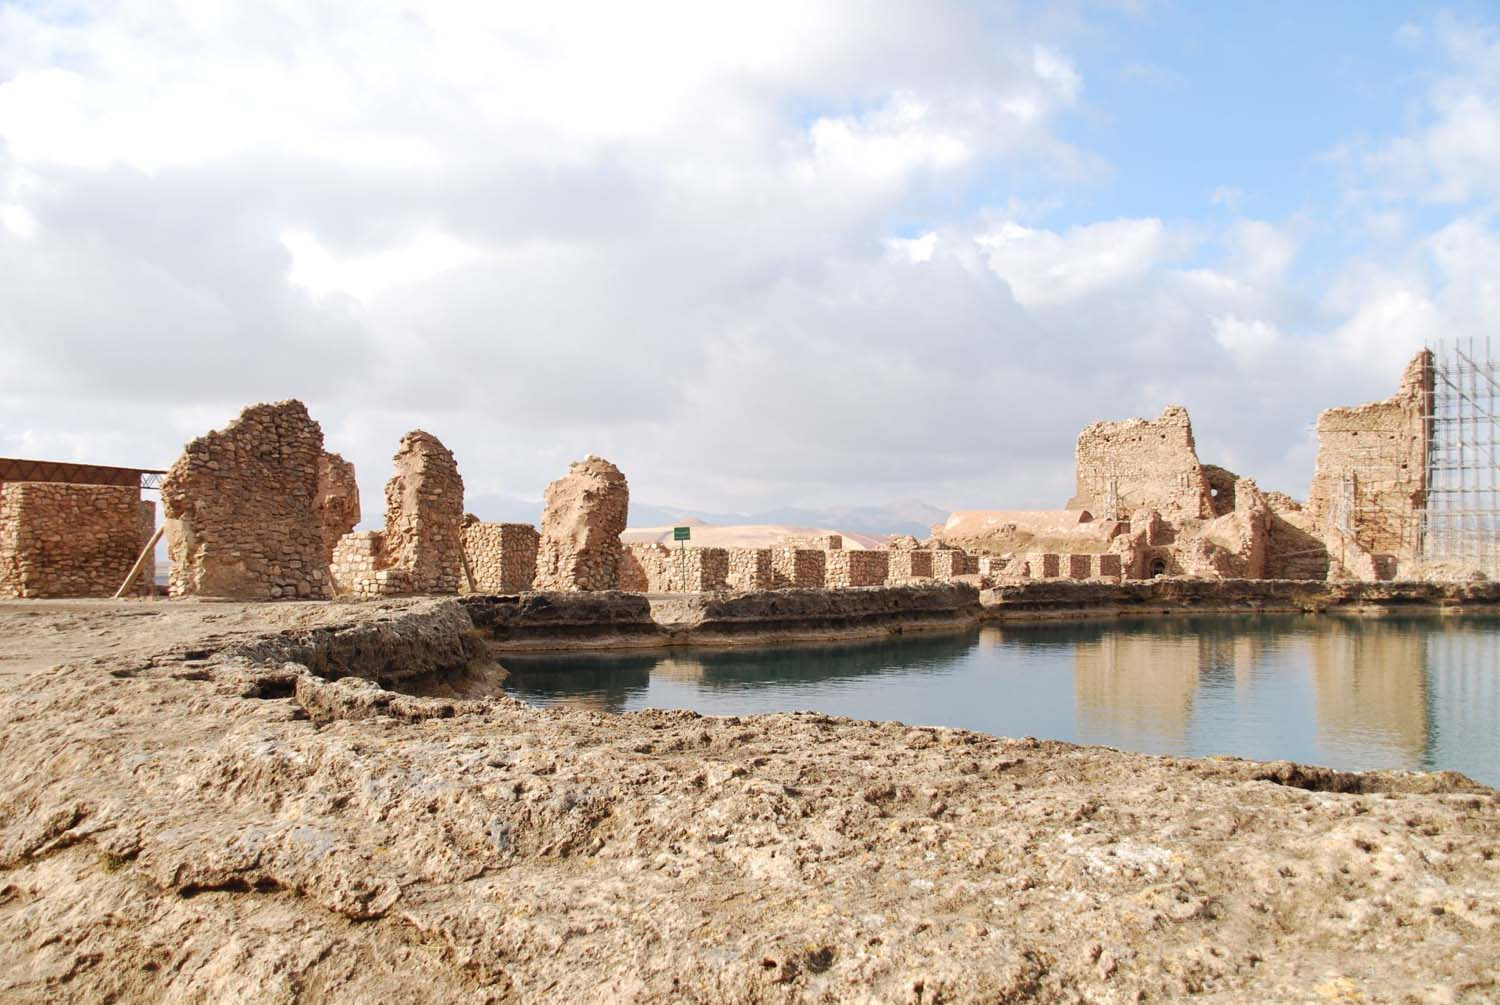 the volcanic lake in the middle of Takht-e-Soleyman temple